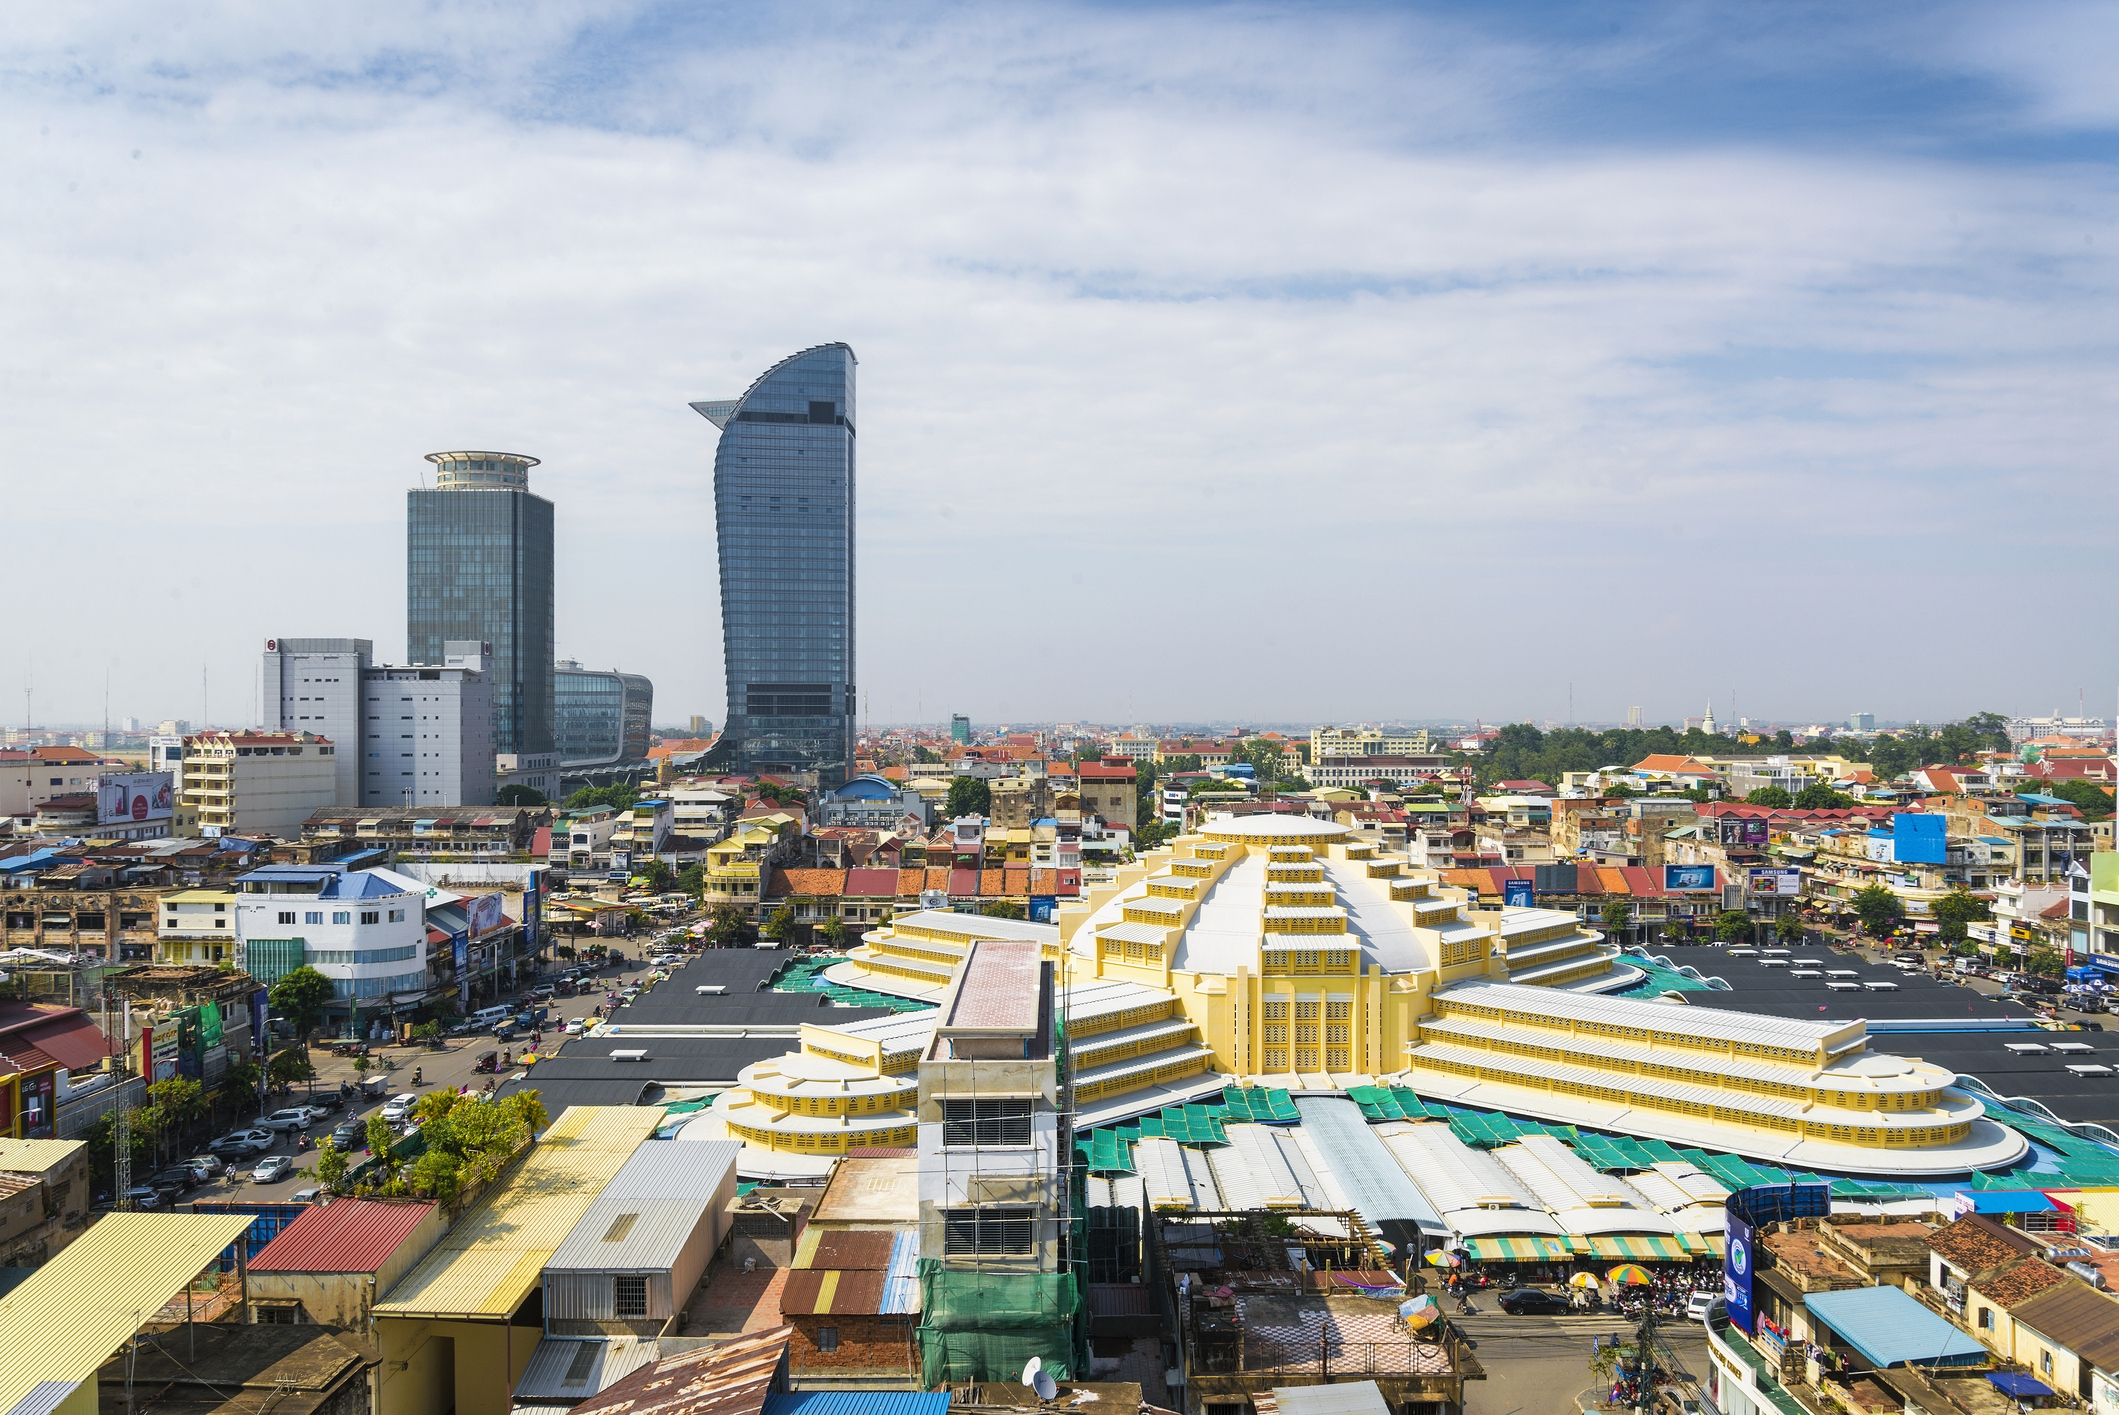 Chinese real estate developer Guangzhou R&F Properties is planning to invest $3 billion to build luxury hotels in Cambodia's Phnom Penh and coastal Preah Sihanouk province over the next five years.